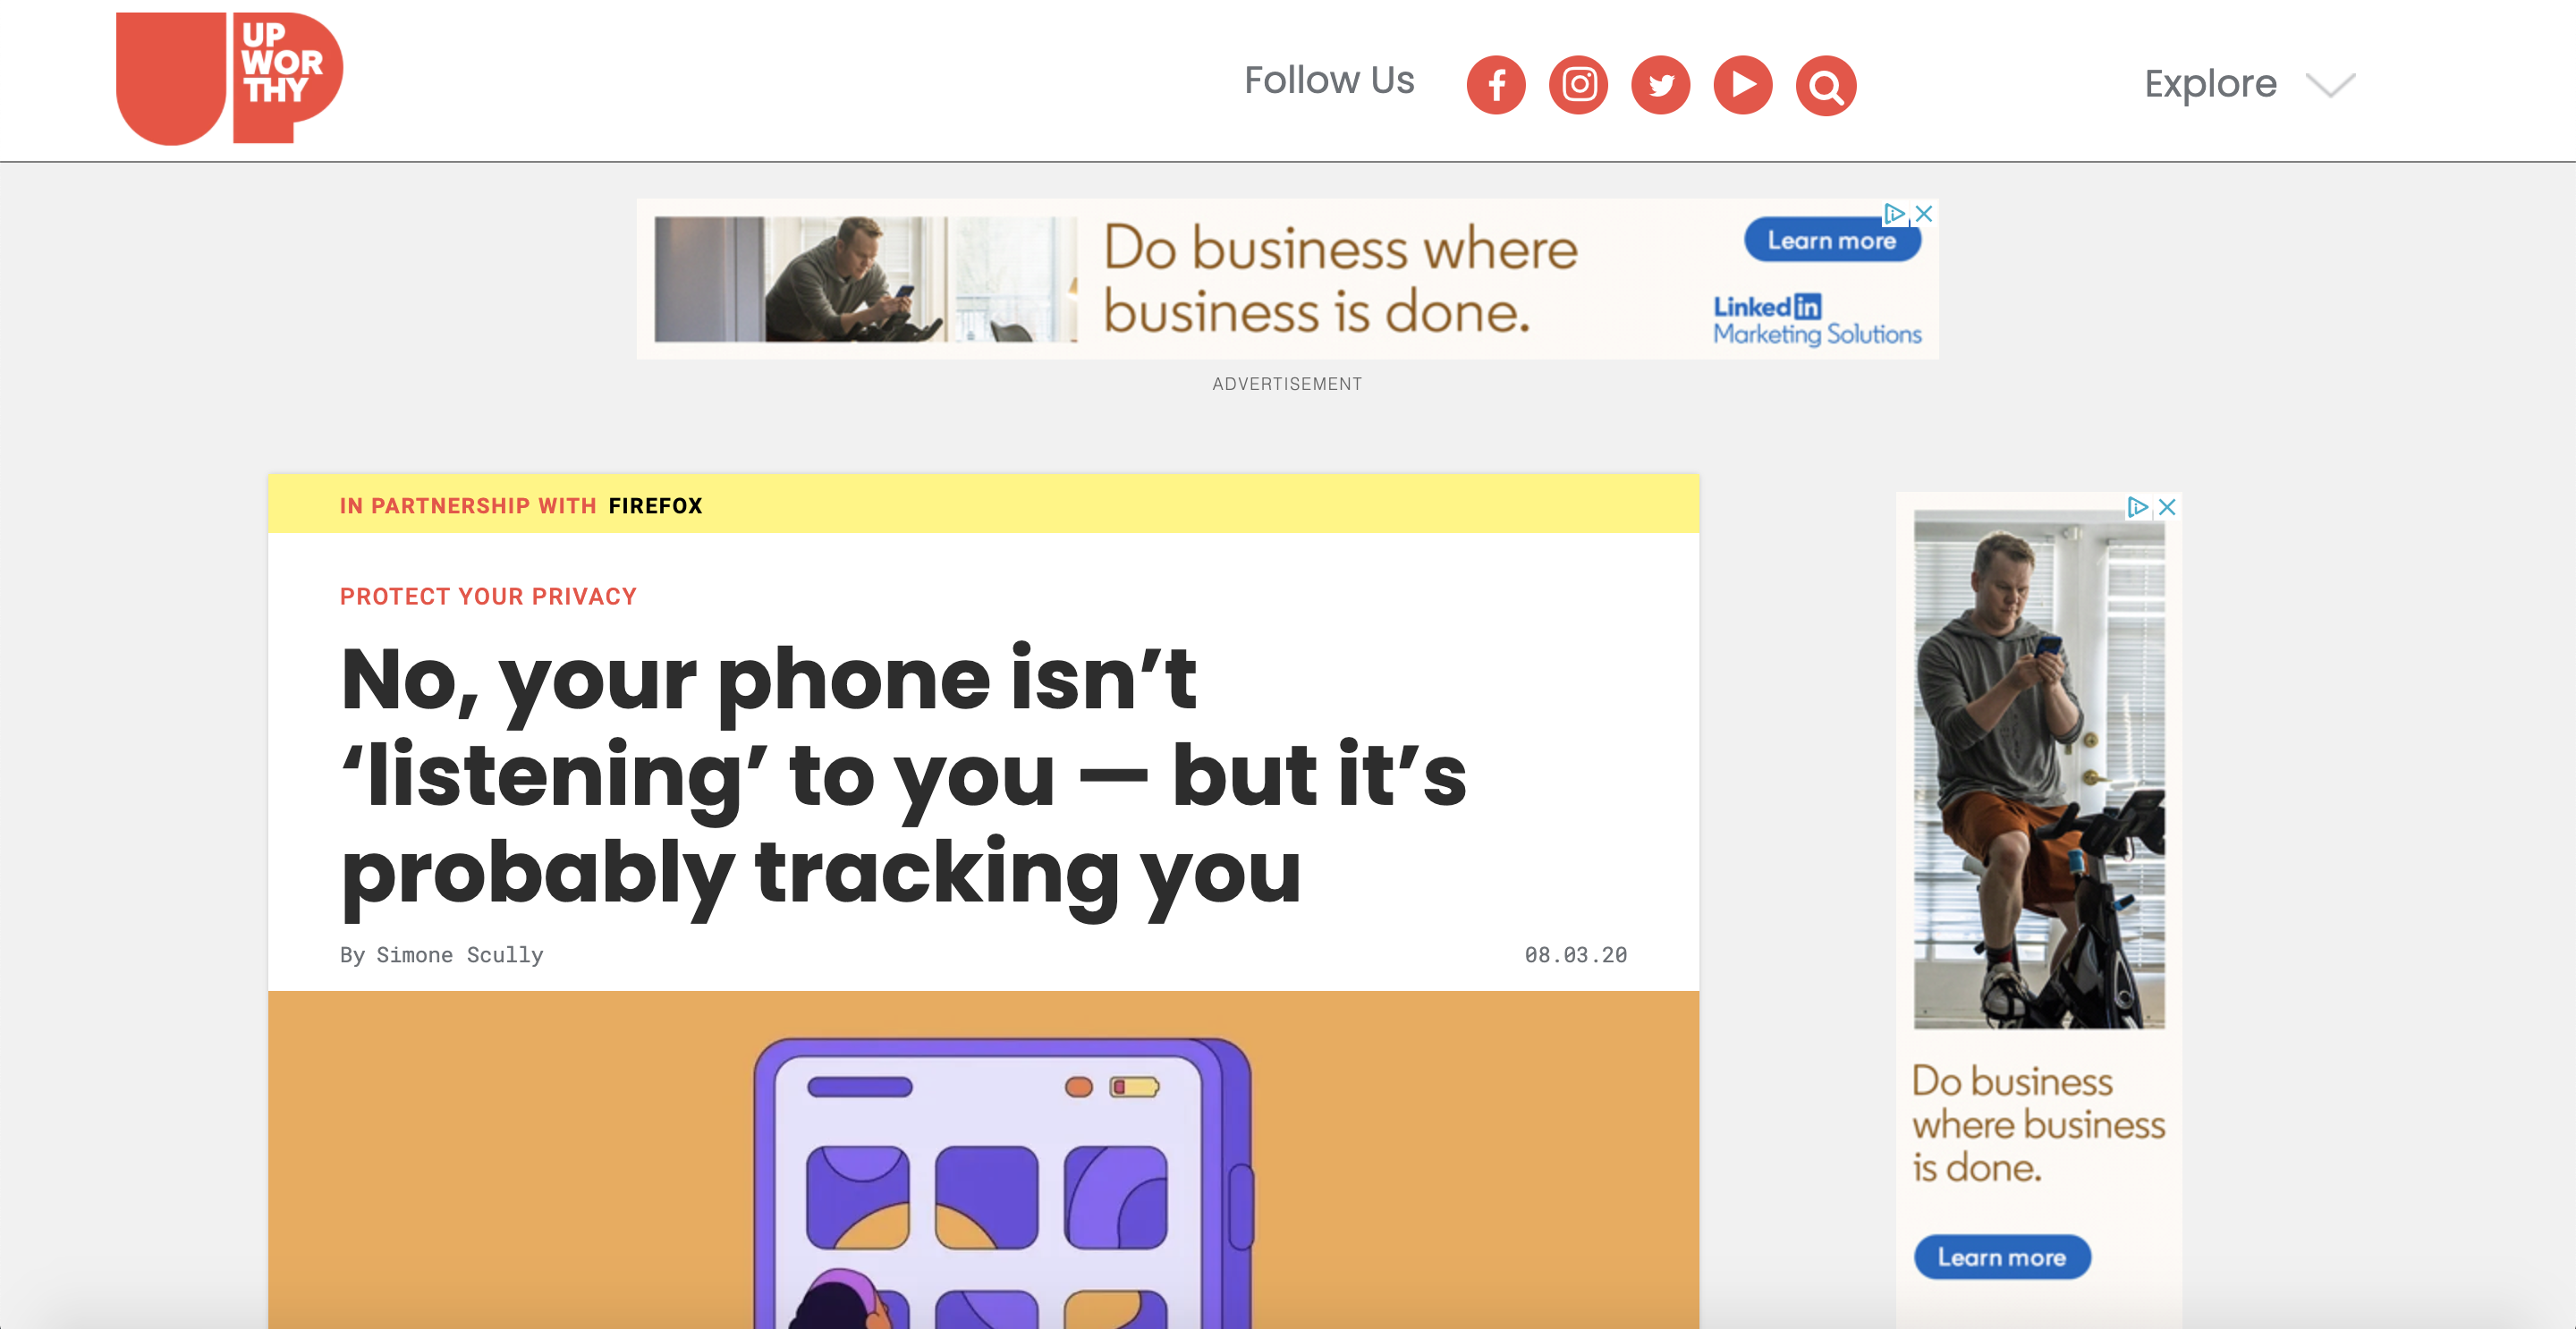 Branded content by Firefoxon Upworthy